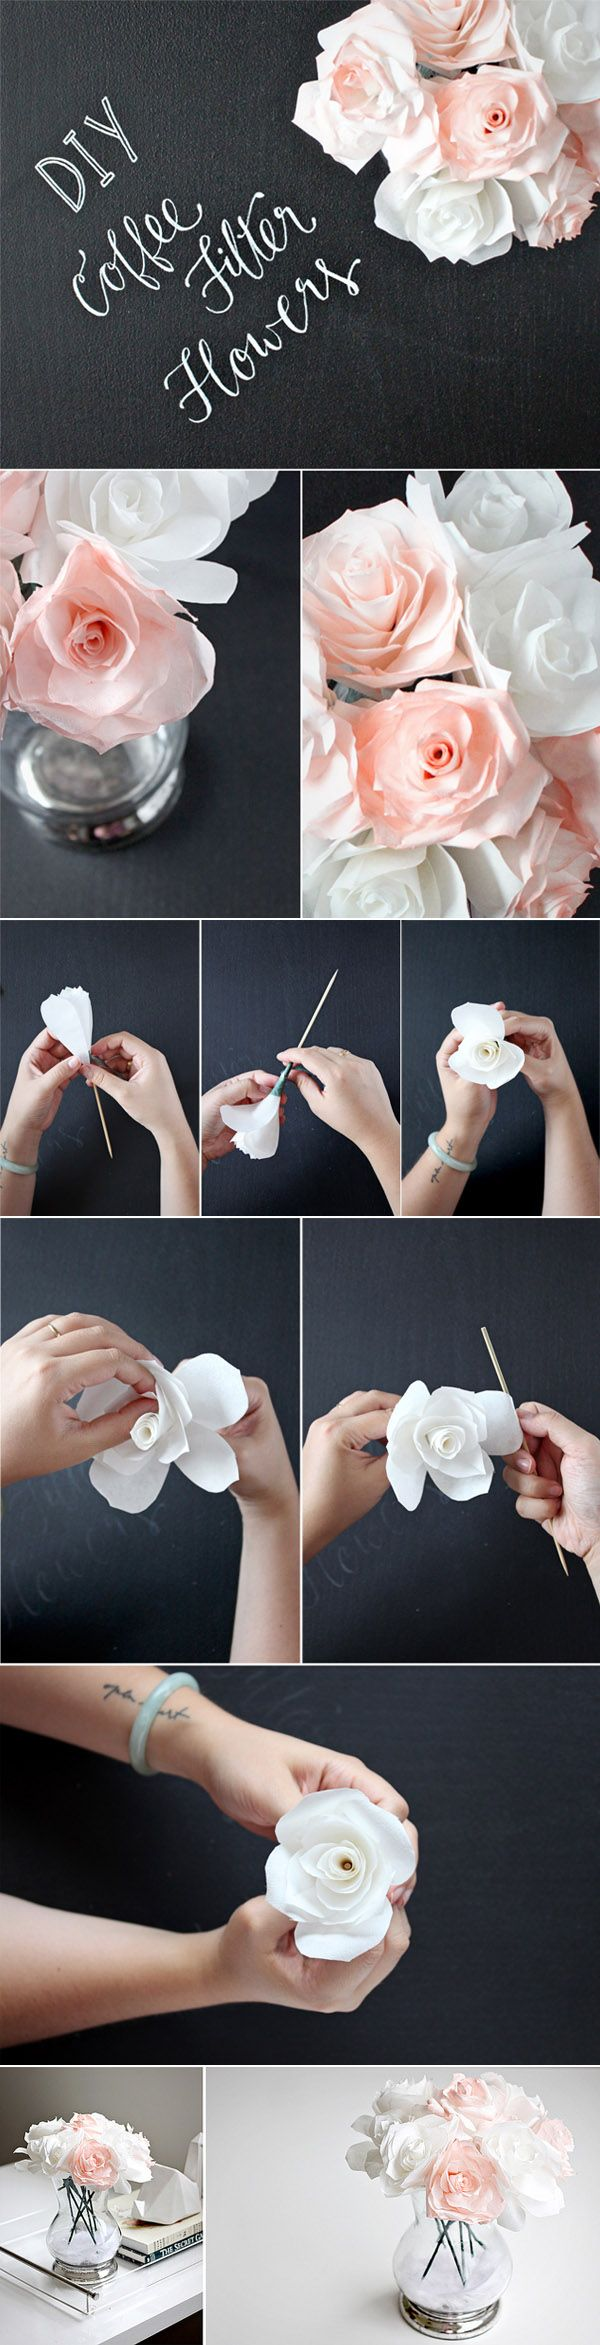 http://www.elegantweddinginvites.com/10-creative-diy-wedding-centerpieces-with-tutorials/#